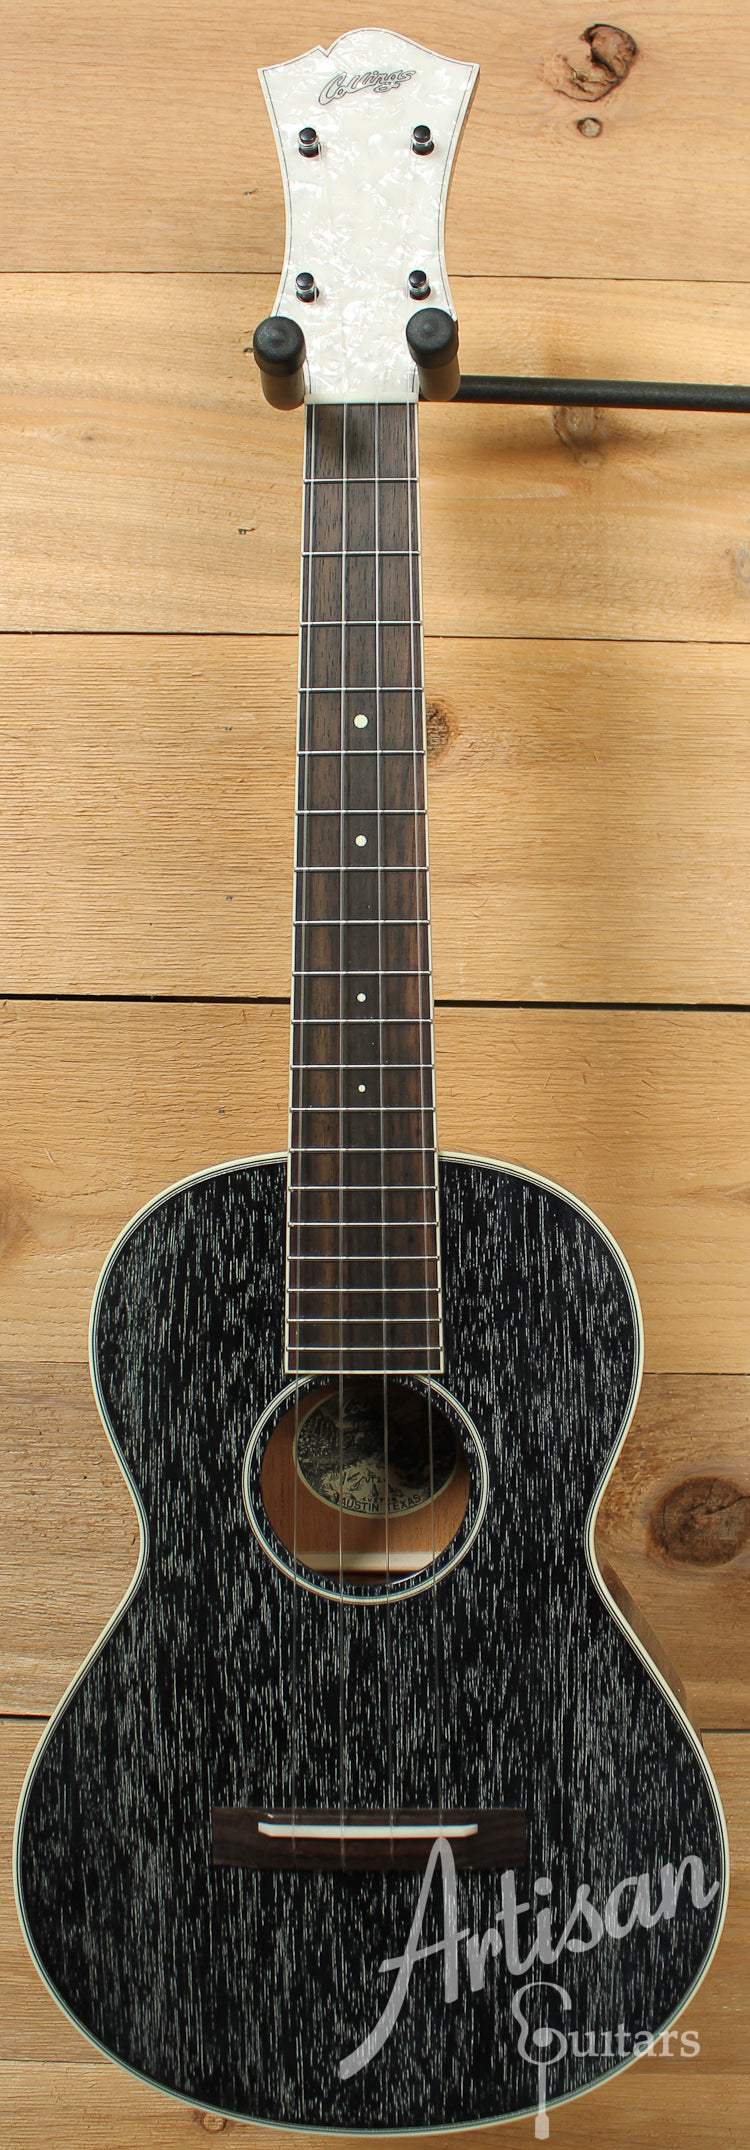 Collings UT2 Ukulele Custom Mahogany Doghair Finish  ID-7772